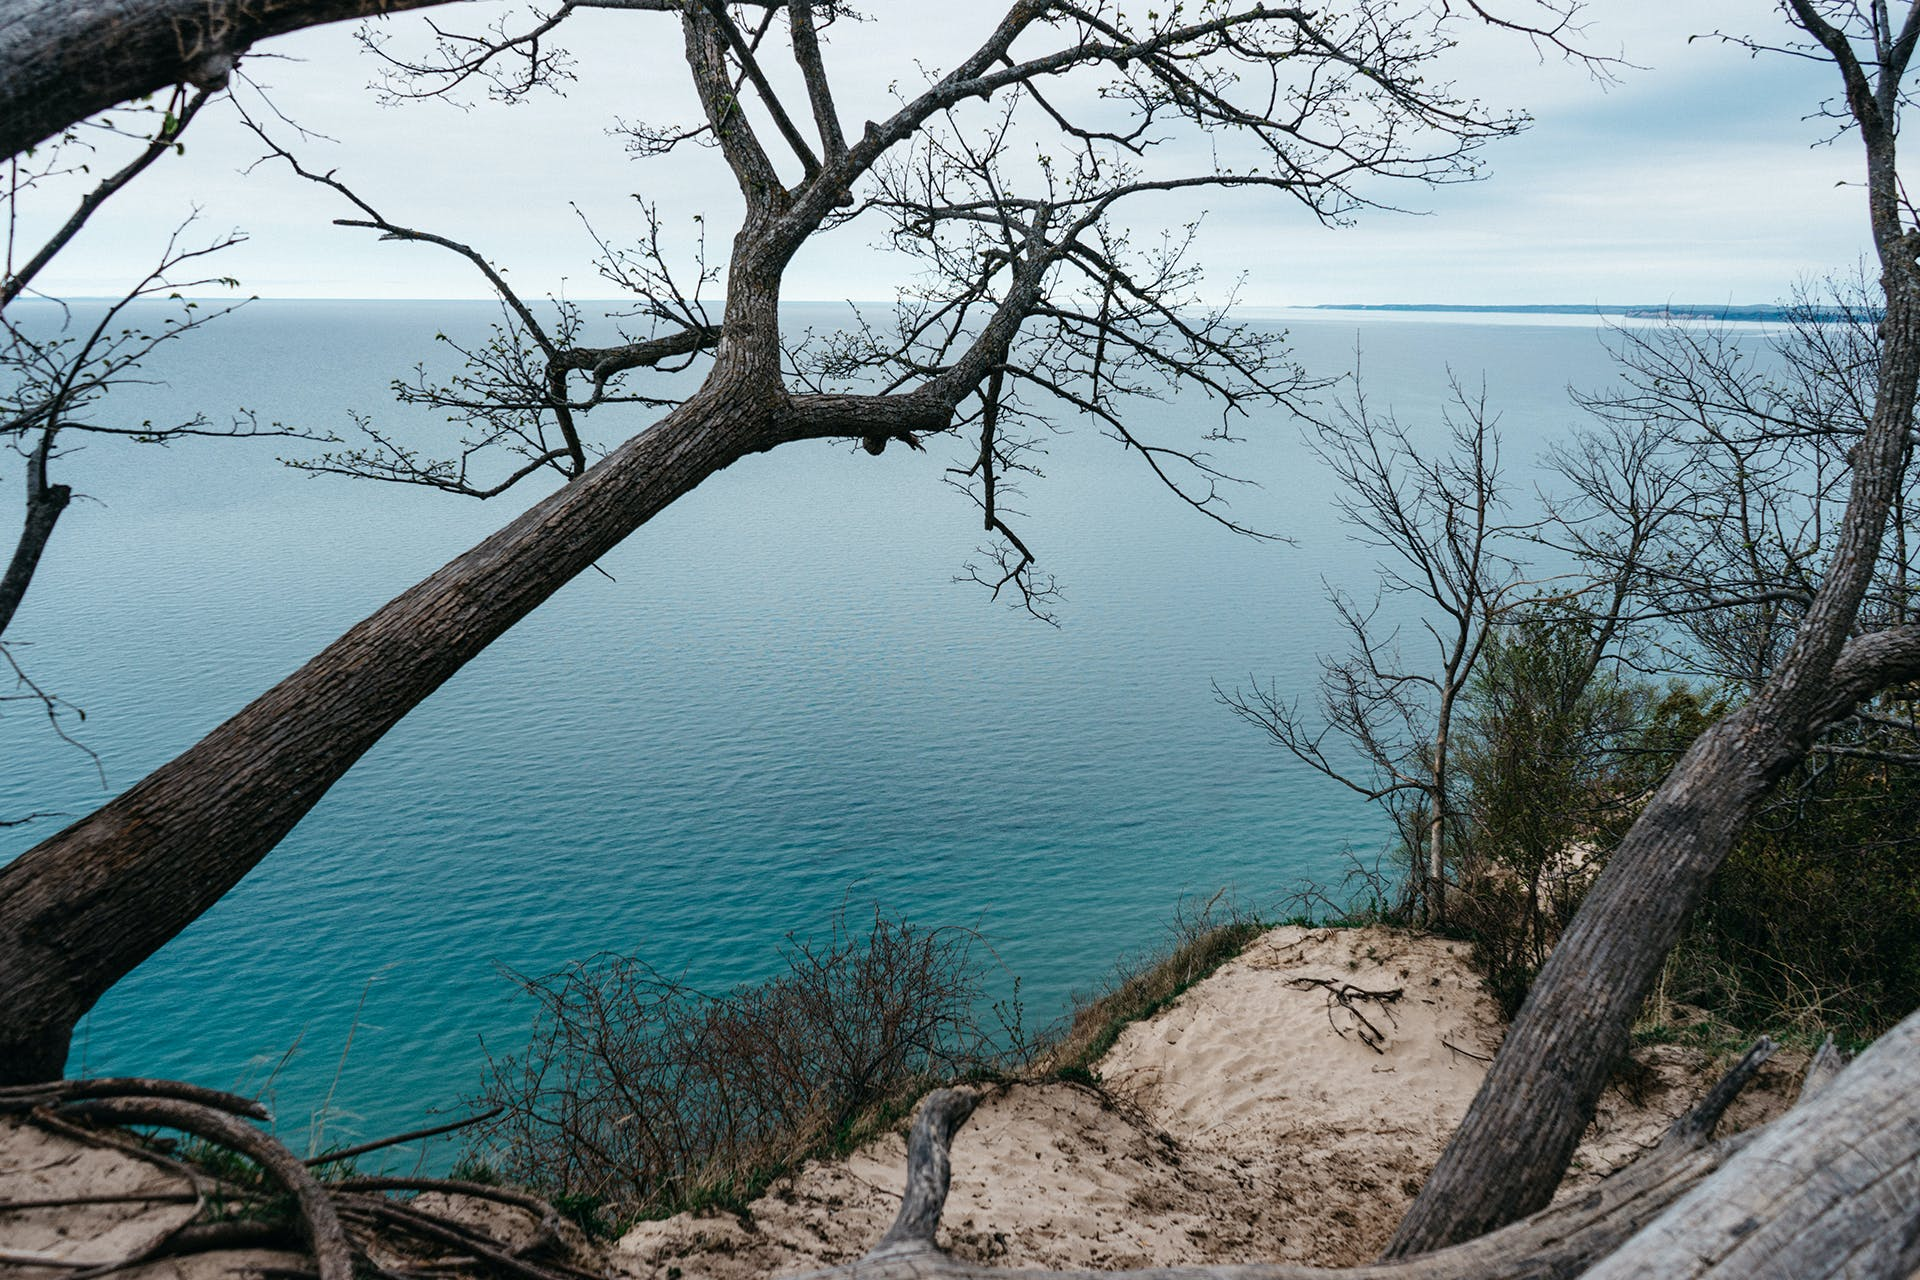 Free stock photo of sea, tree, cliff